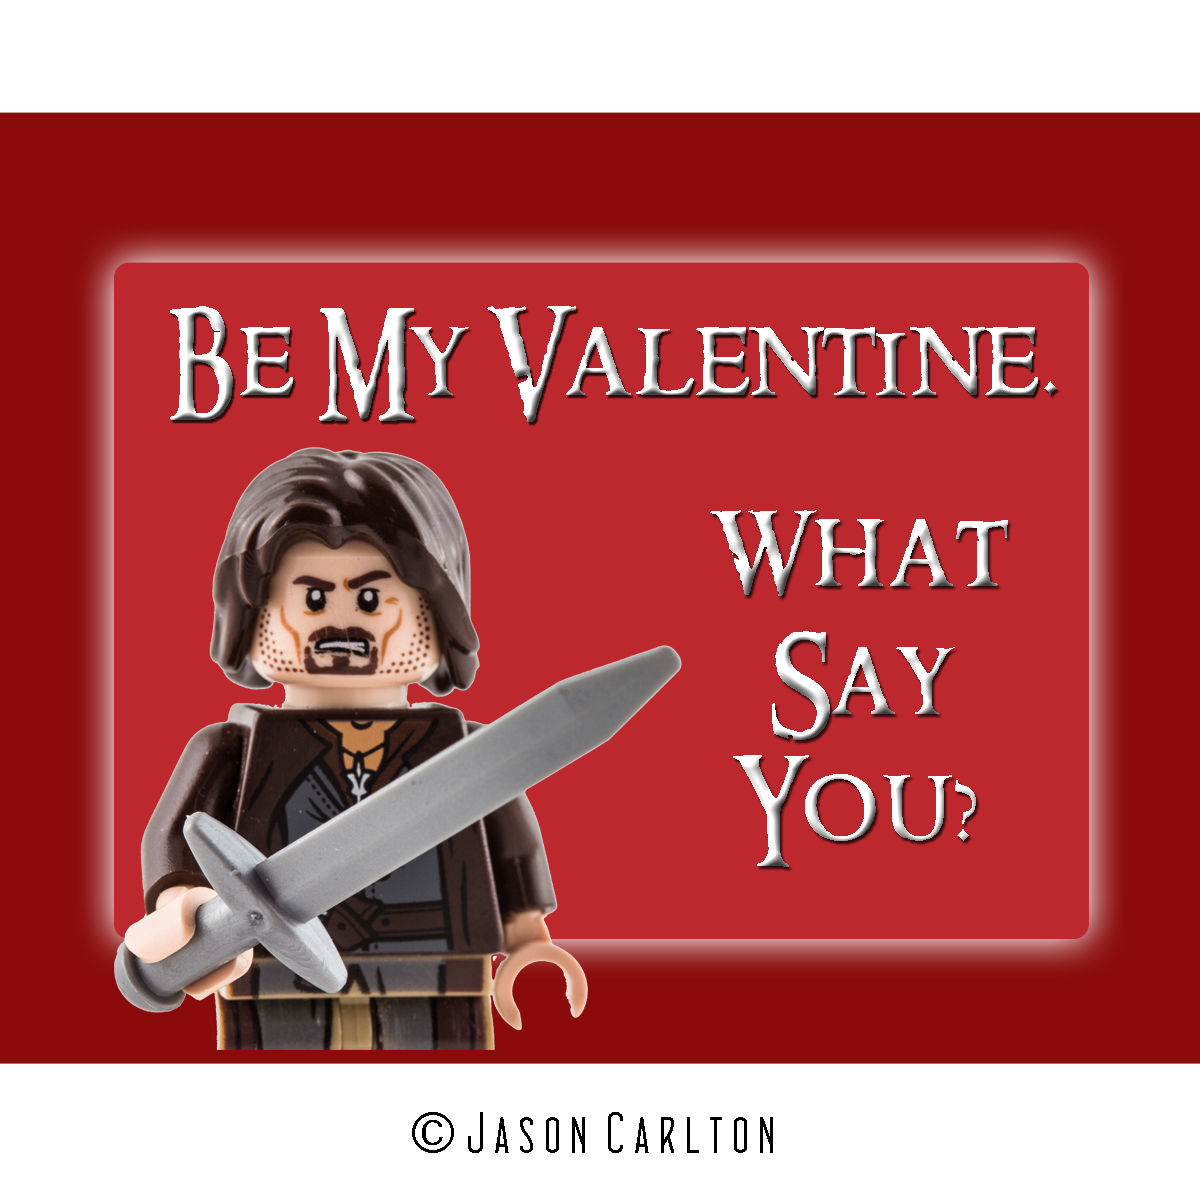 ... Photo Lego Eragon Valentine Card Lego Lord Of The Rings ...